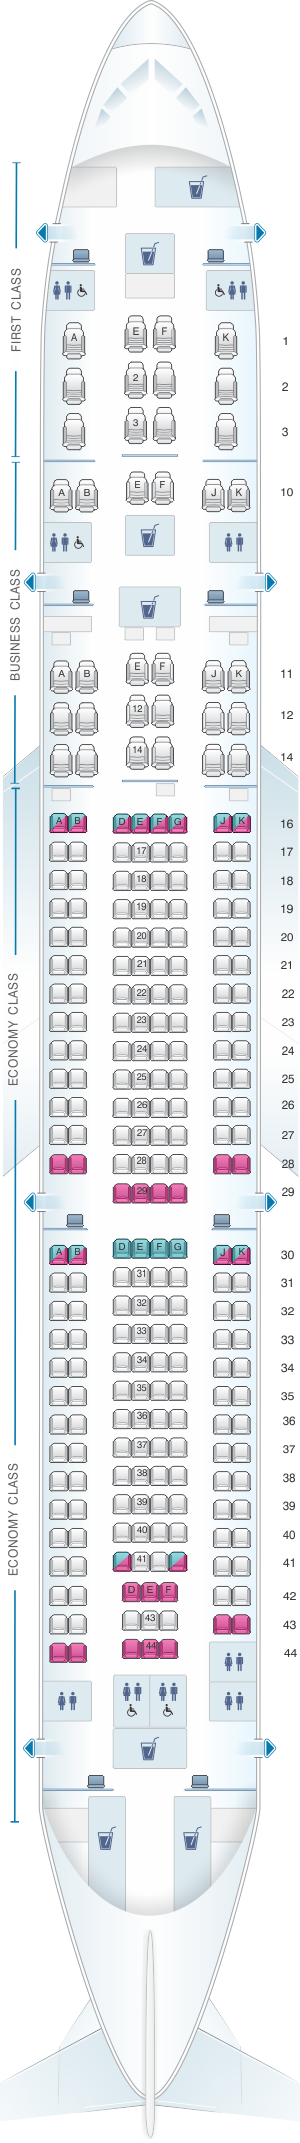 Seat map for Qatar Airways Airbus A330 300 259pax